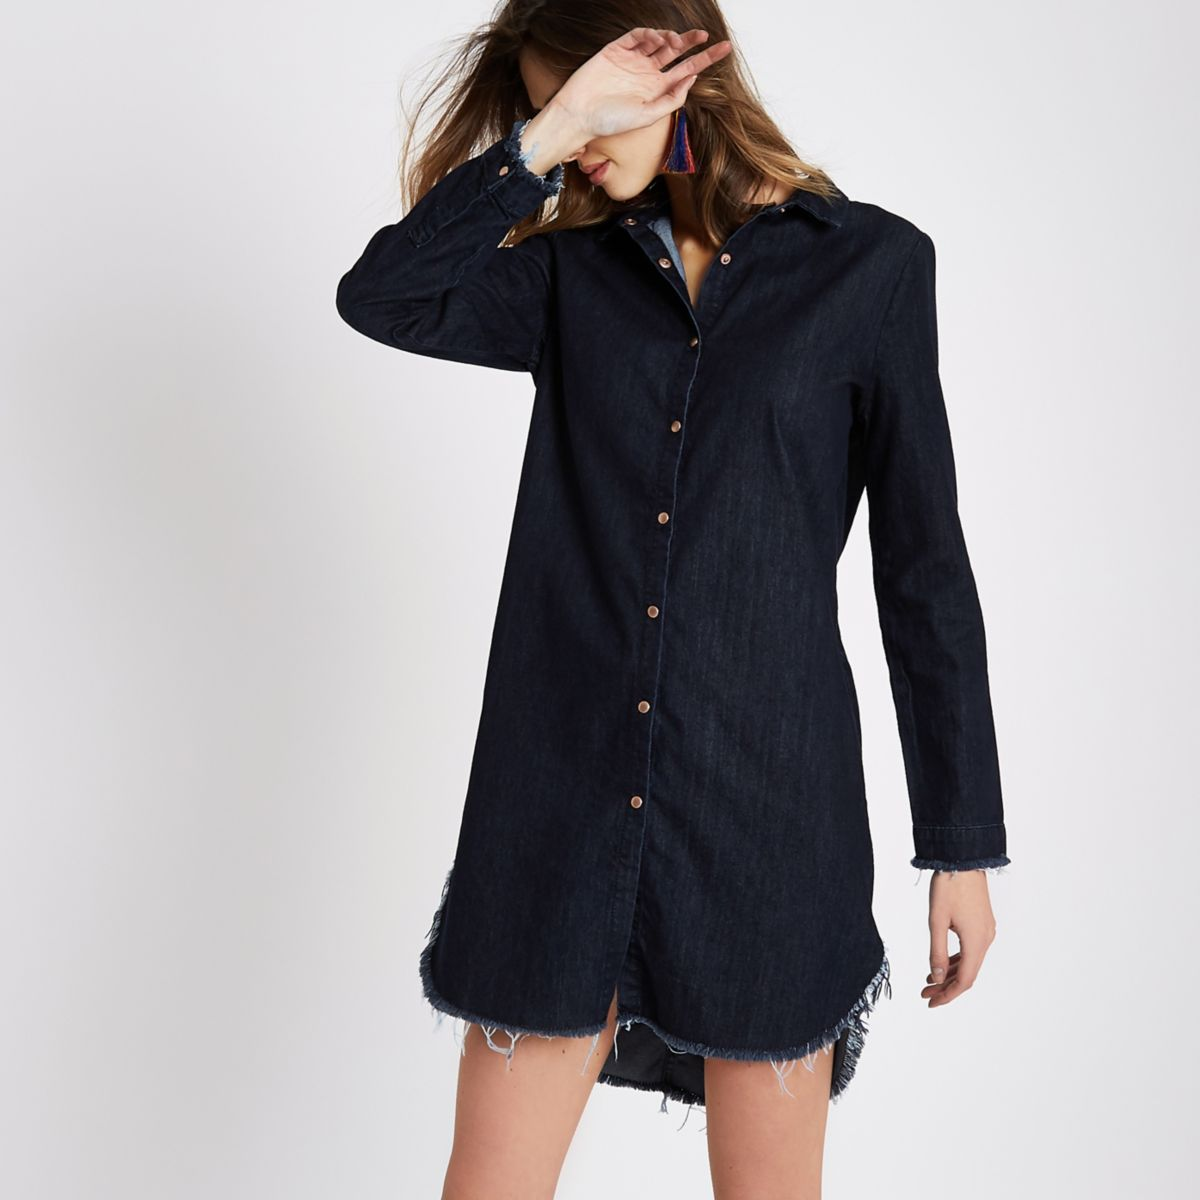 Dark Blue Frayed Trim Denim Shirt Dress Dresses Sale